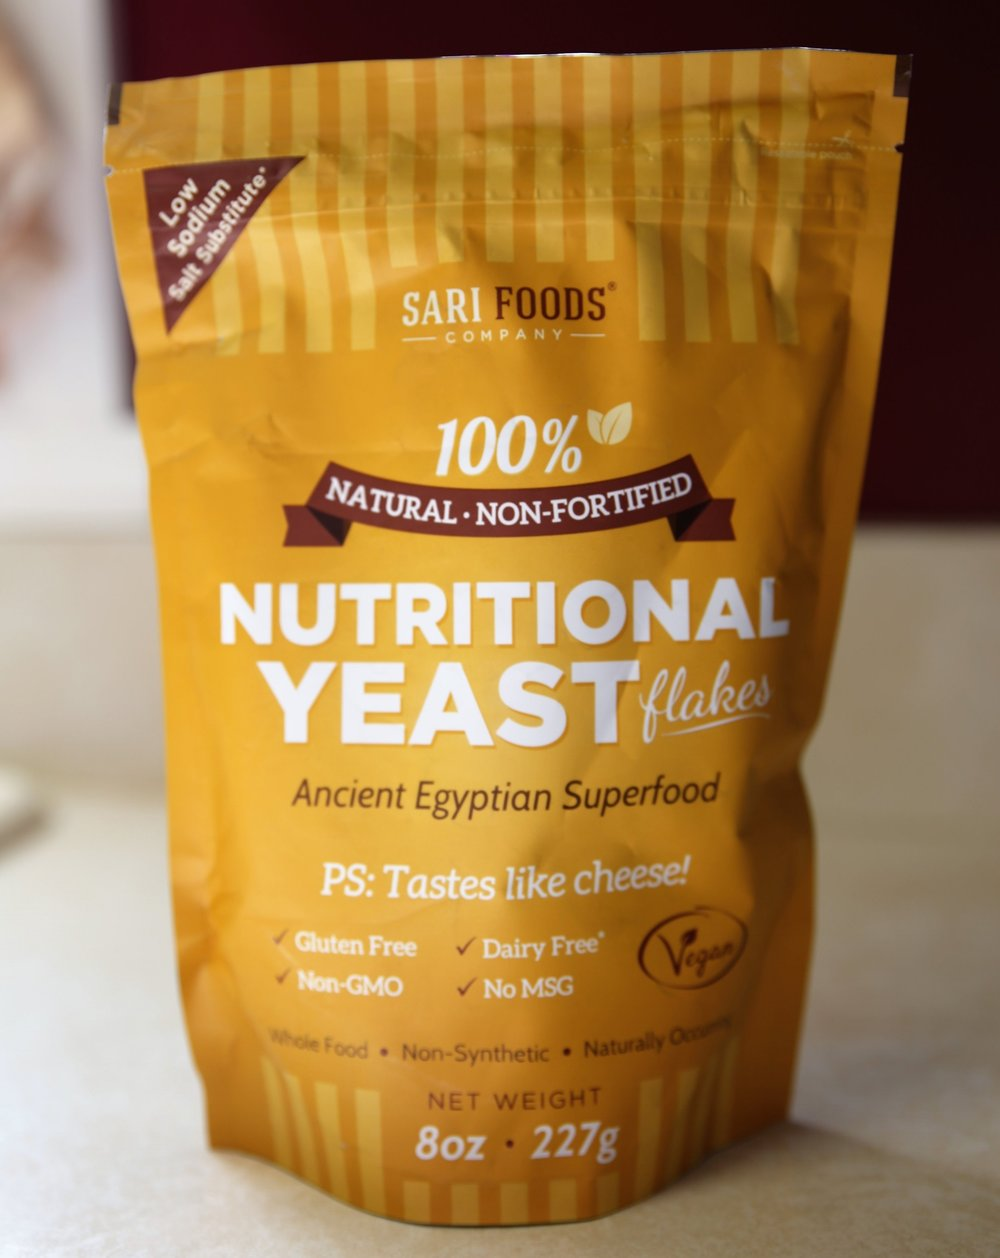 Nutritional Yeast - Love this brand in particular because it does not contain any